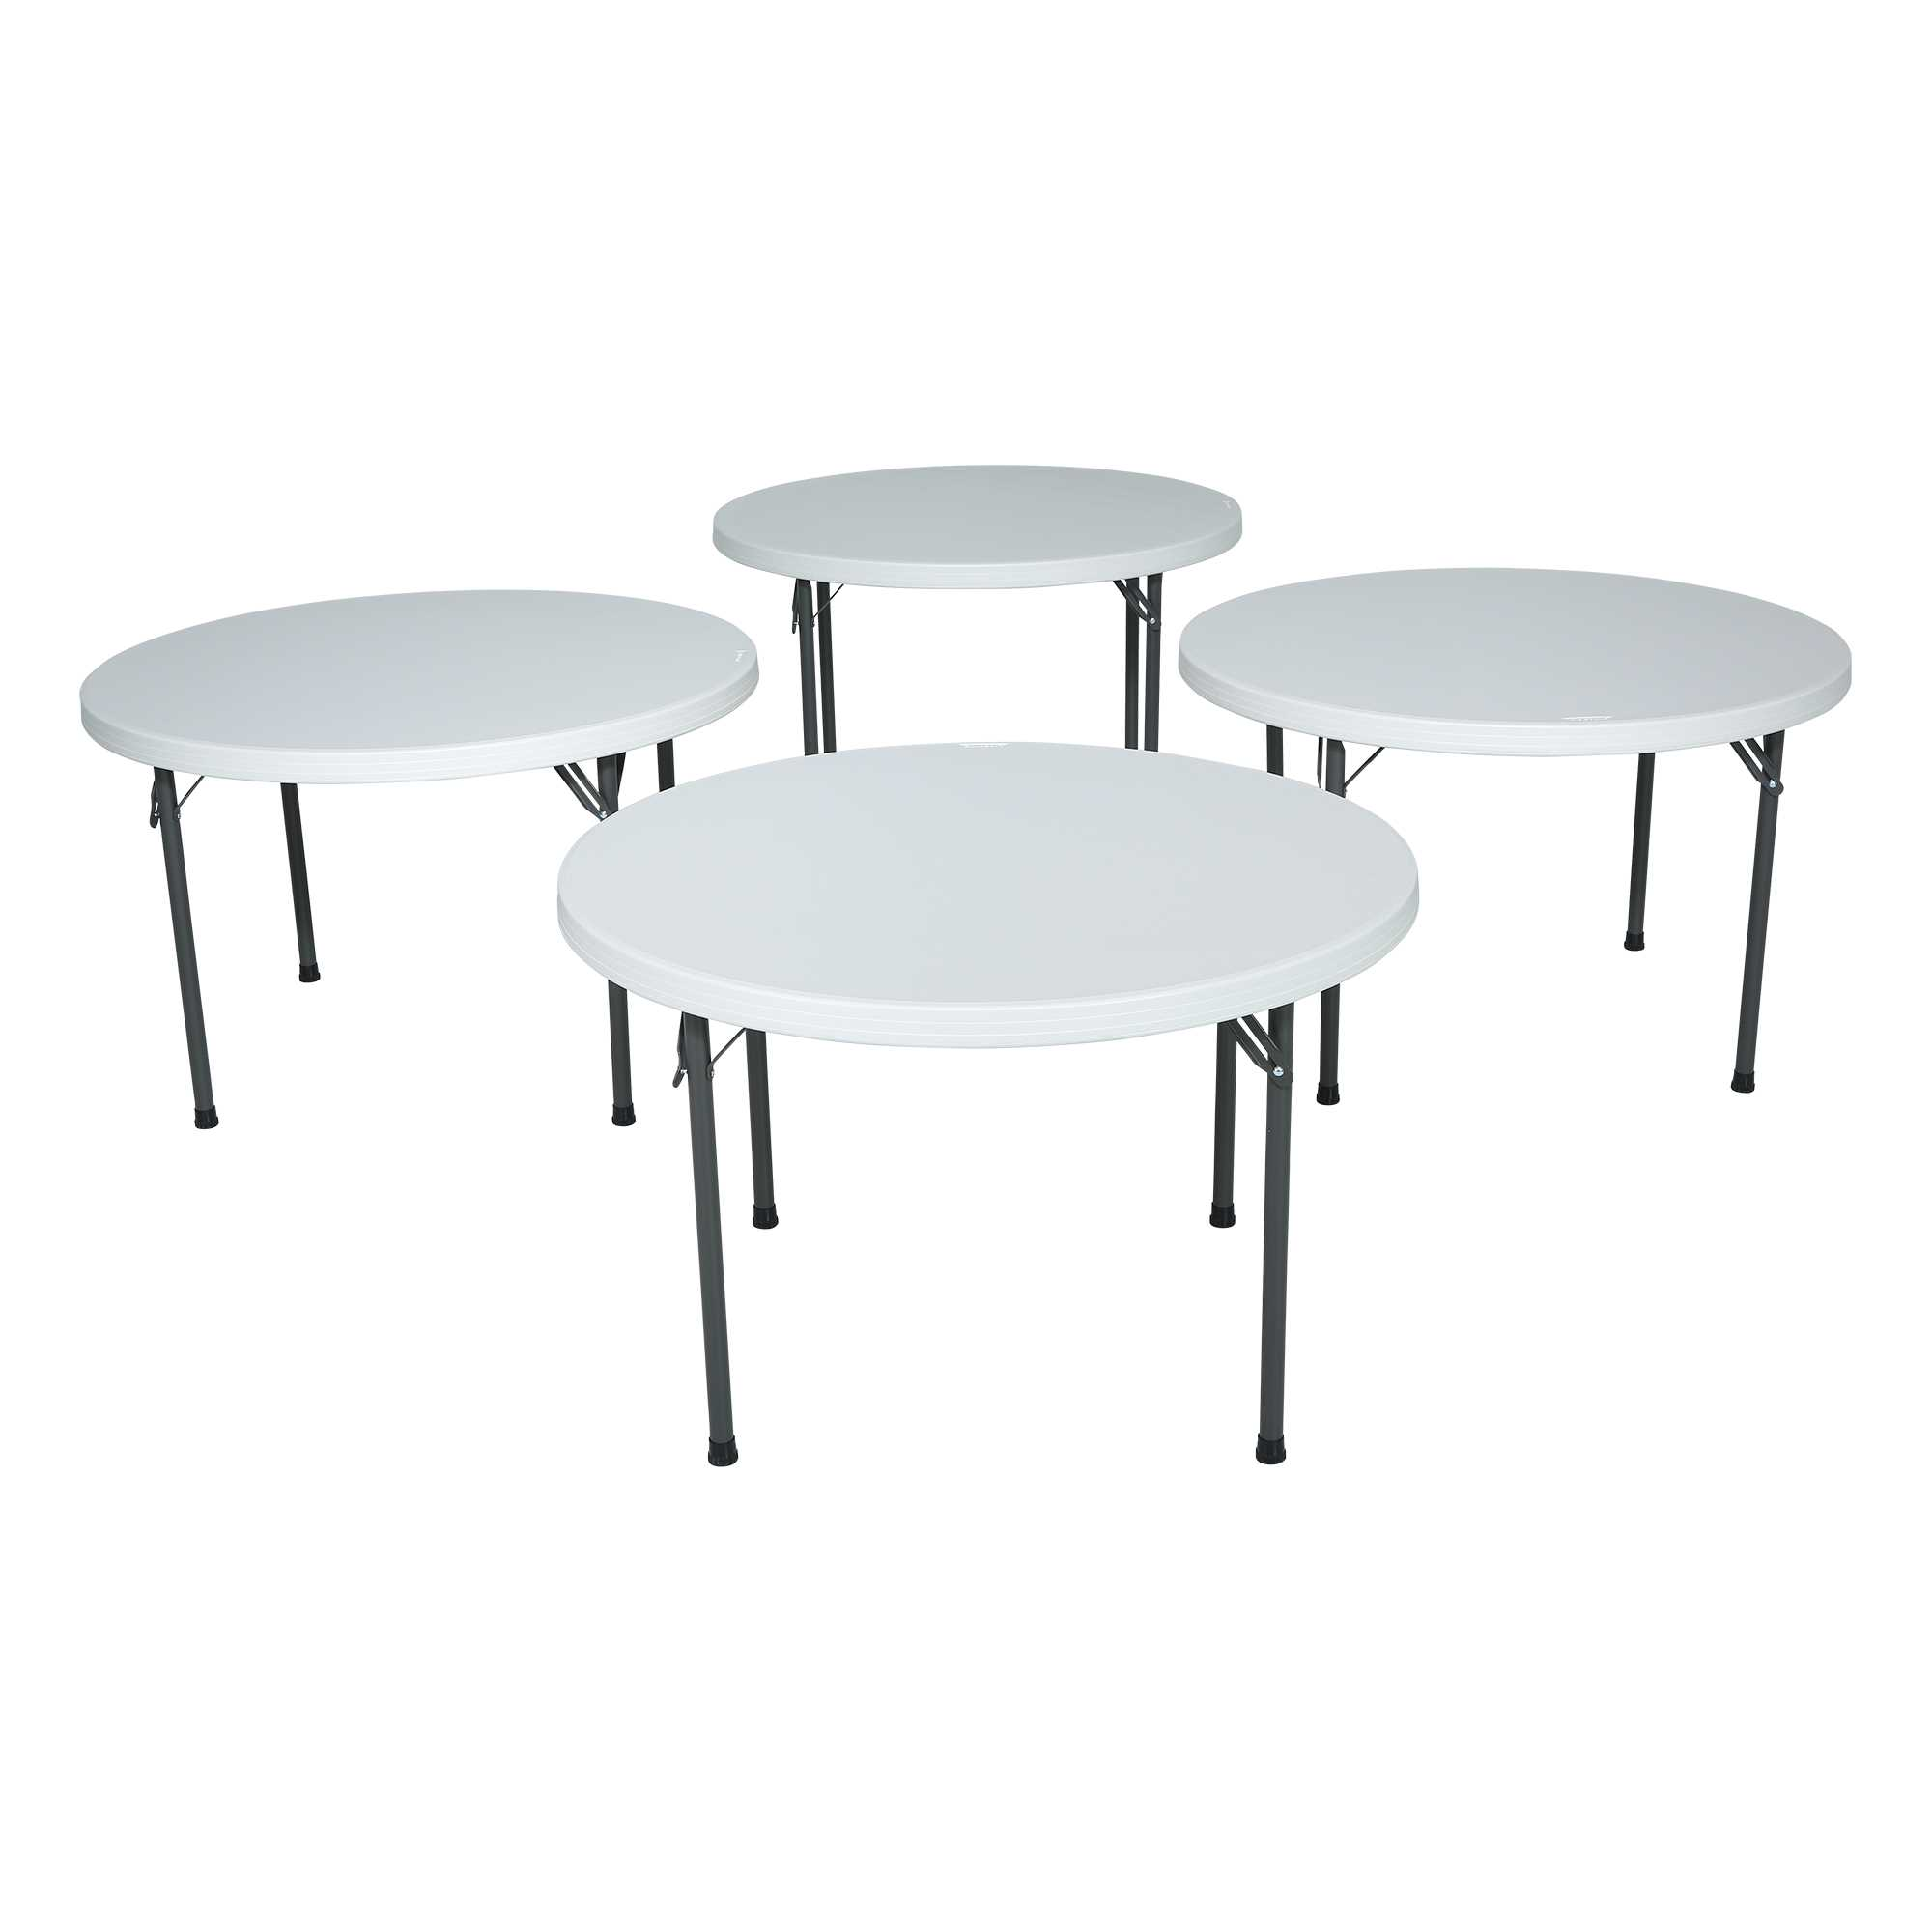 Table pliante ronde dia 122cm 4 6 personnes table for Table midland 4 personnes